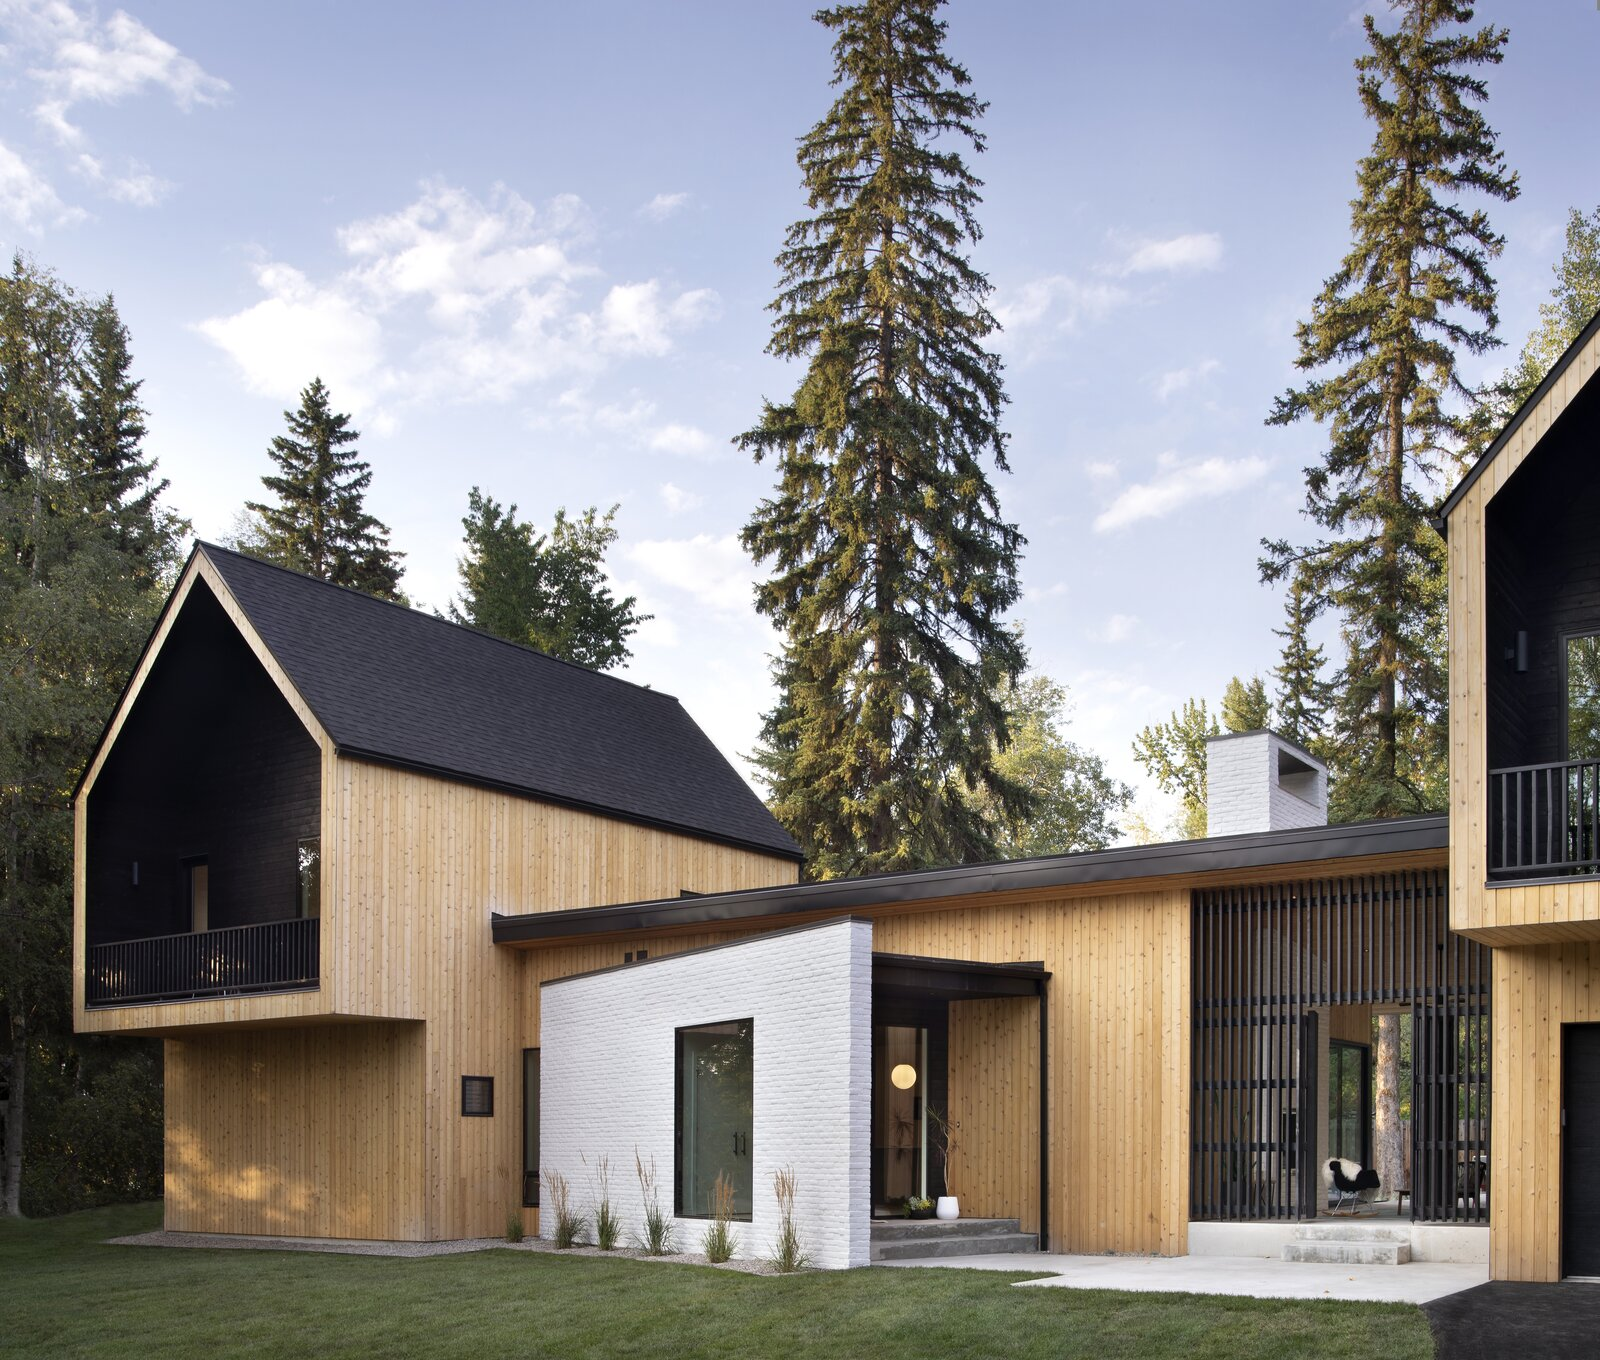 Exterior of Twin Peaks by Workaday Design